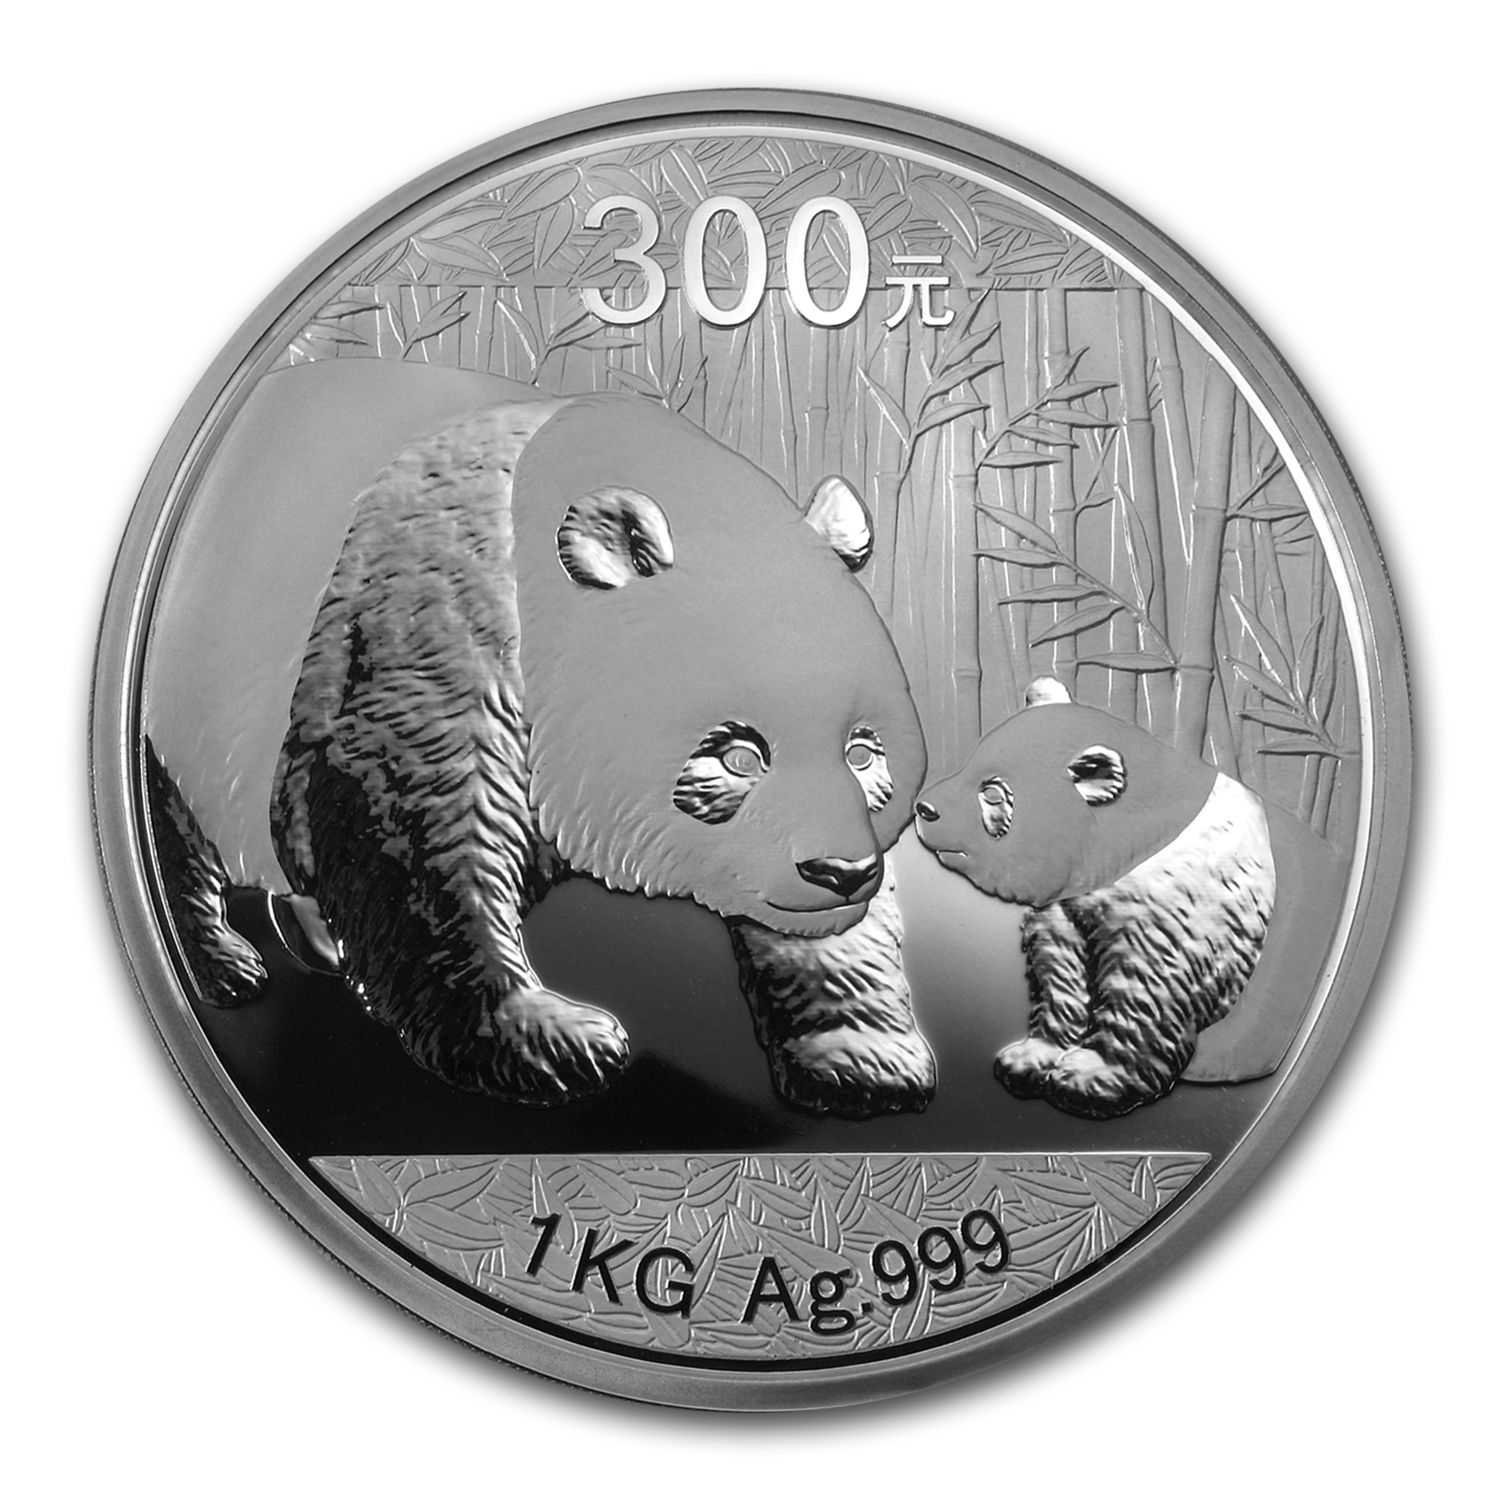 2011 1 Kilo Silver Chinese Panda Proof (w/Box & COA)